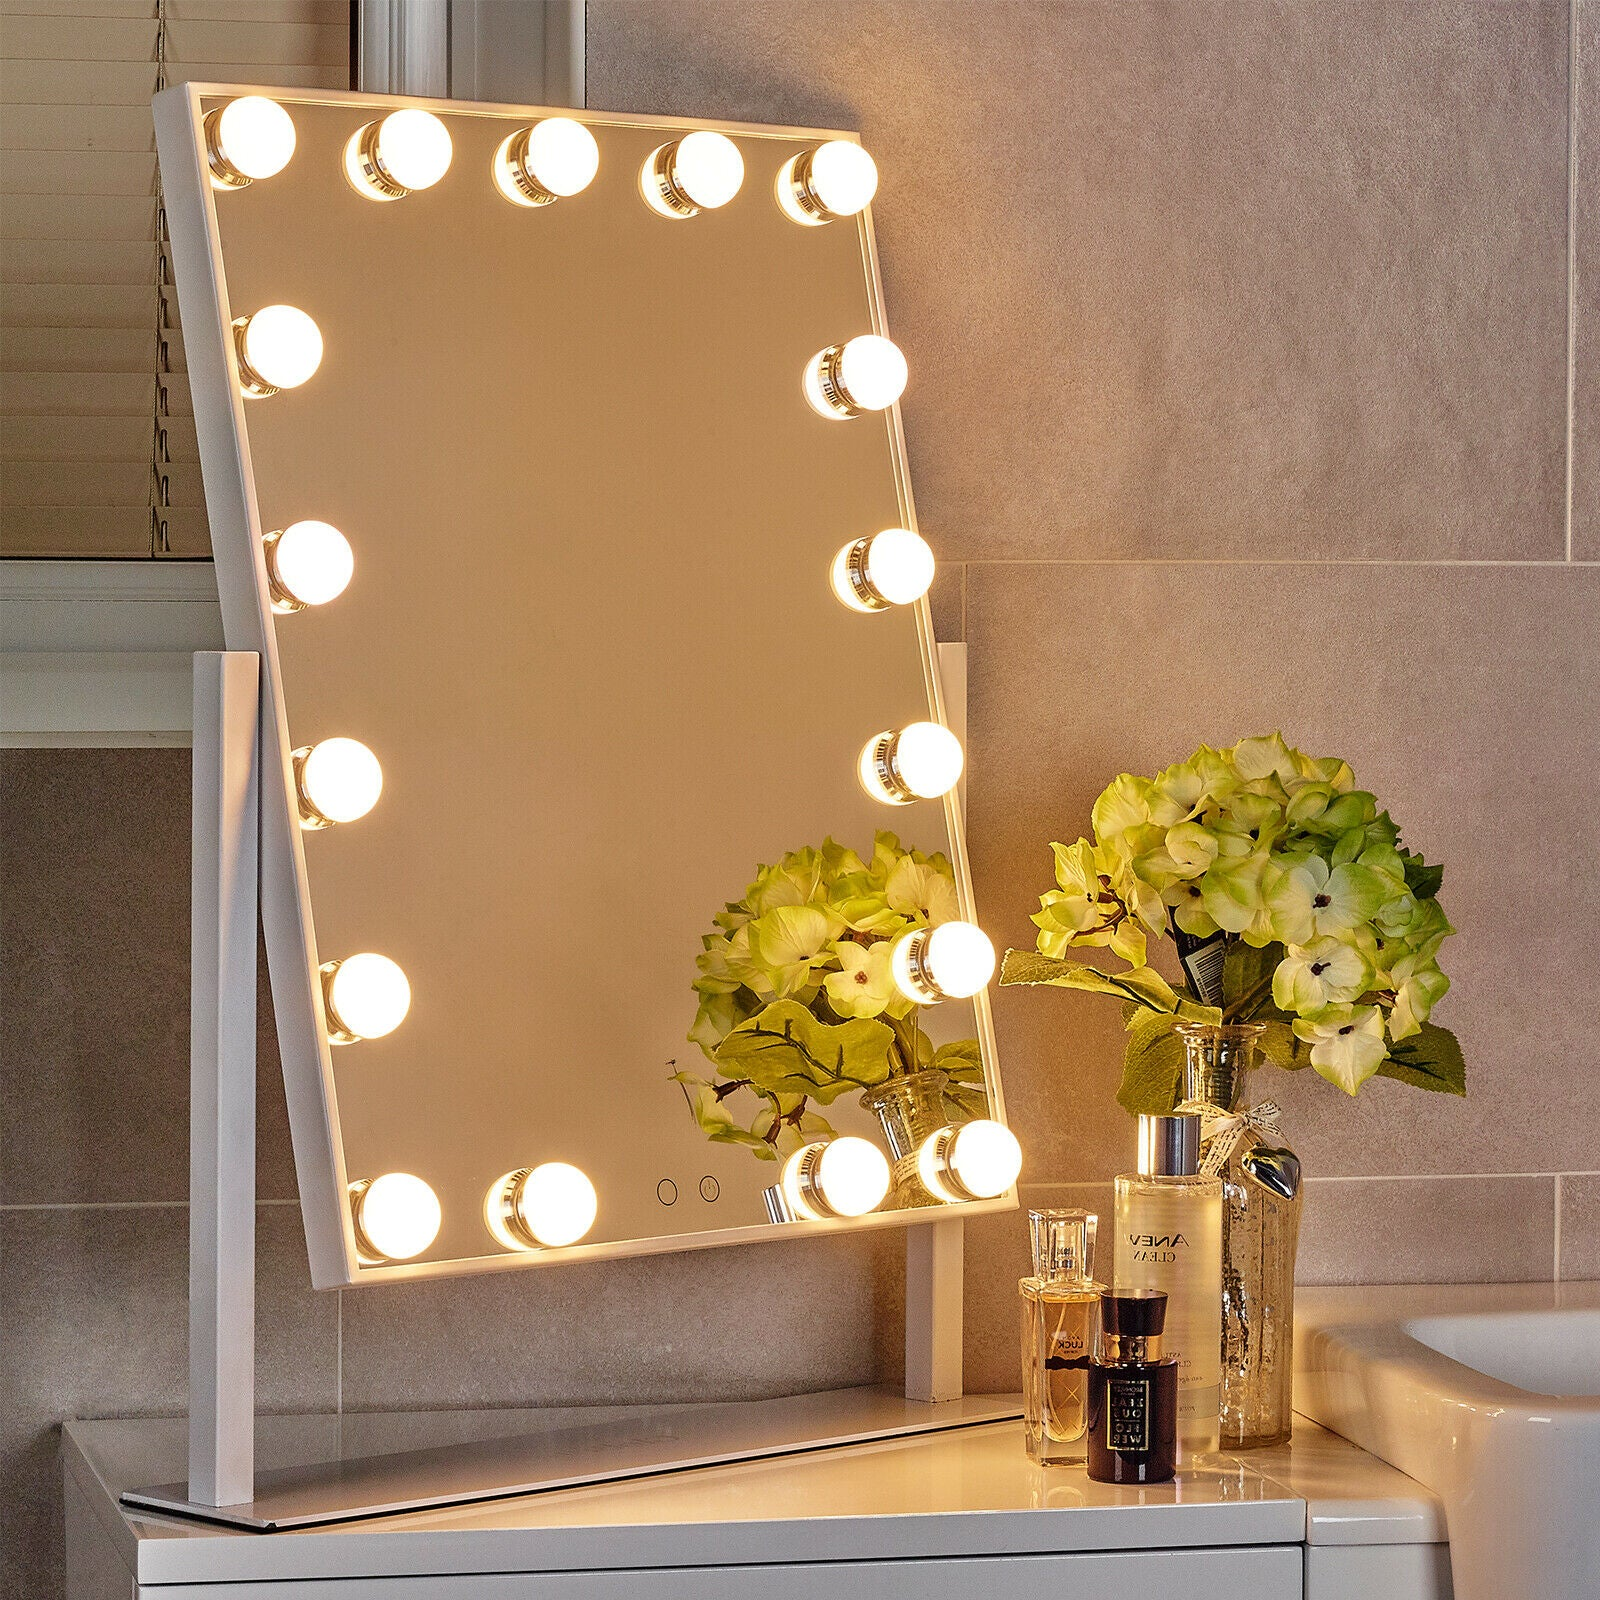 Globrite Hollywood Dressing Table Mirror - The London Outlet